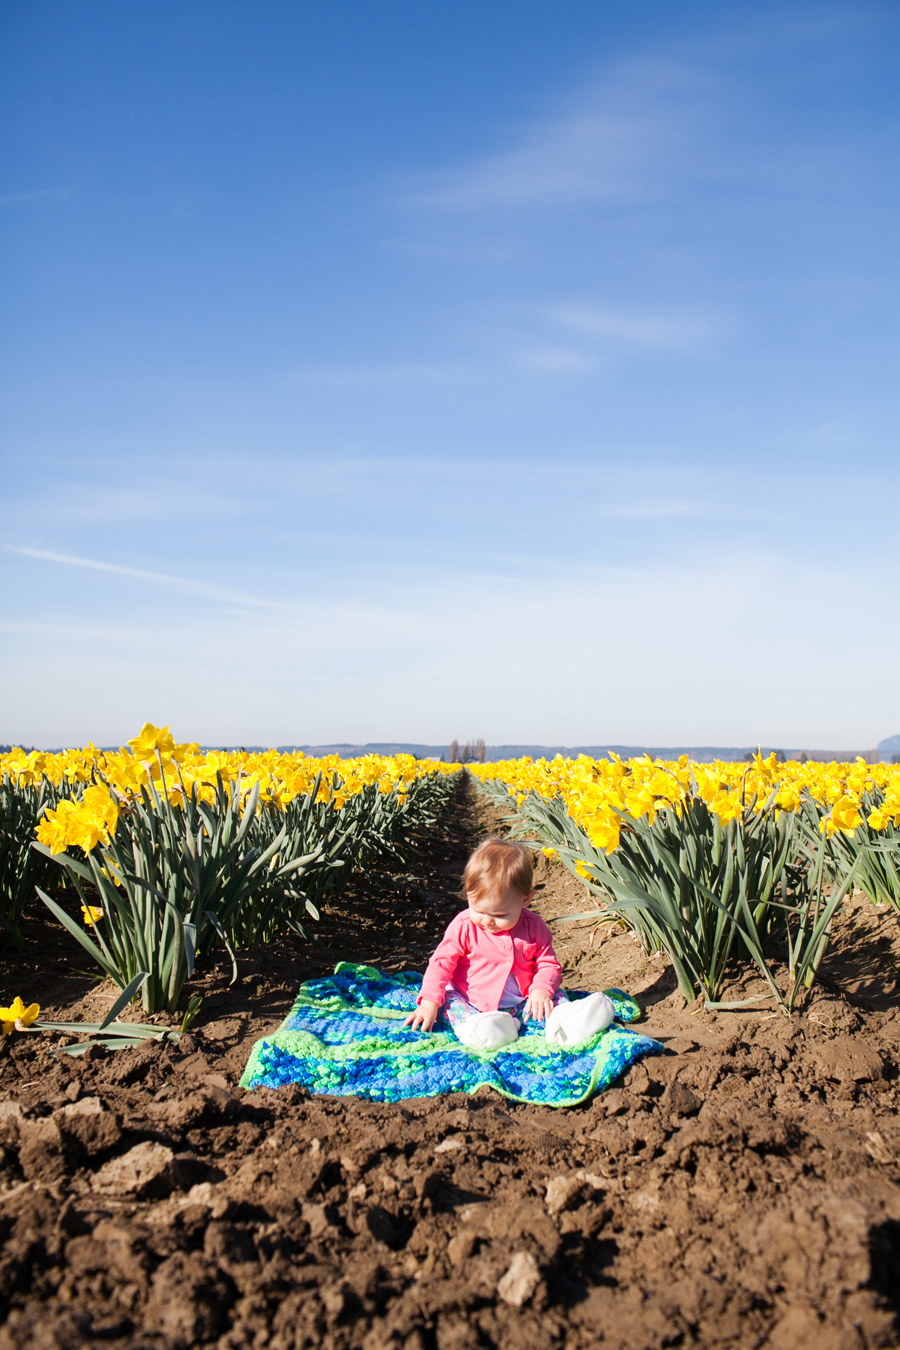 012-mount-vernon-washington-daffodils-norley-family.jpg